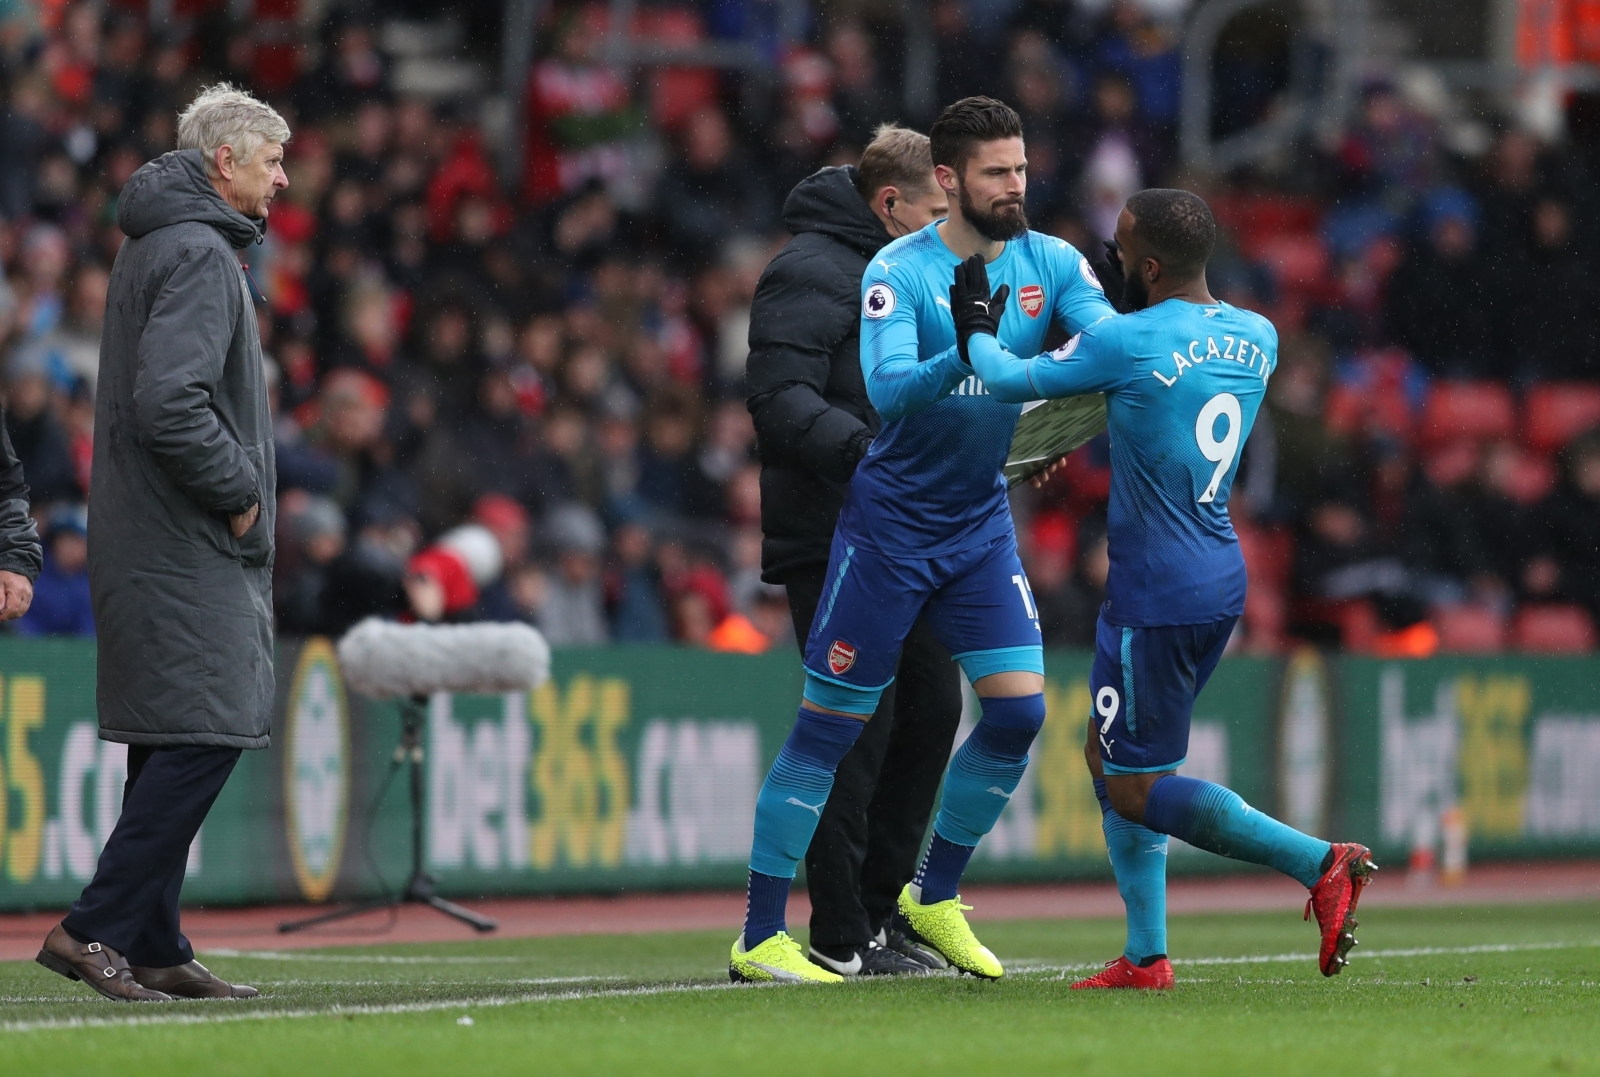 Arsene Wenger: 'Olivier Giroud injury does not look very good'